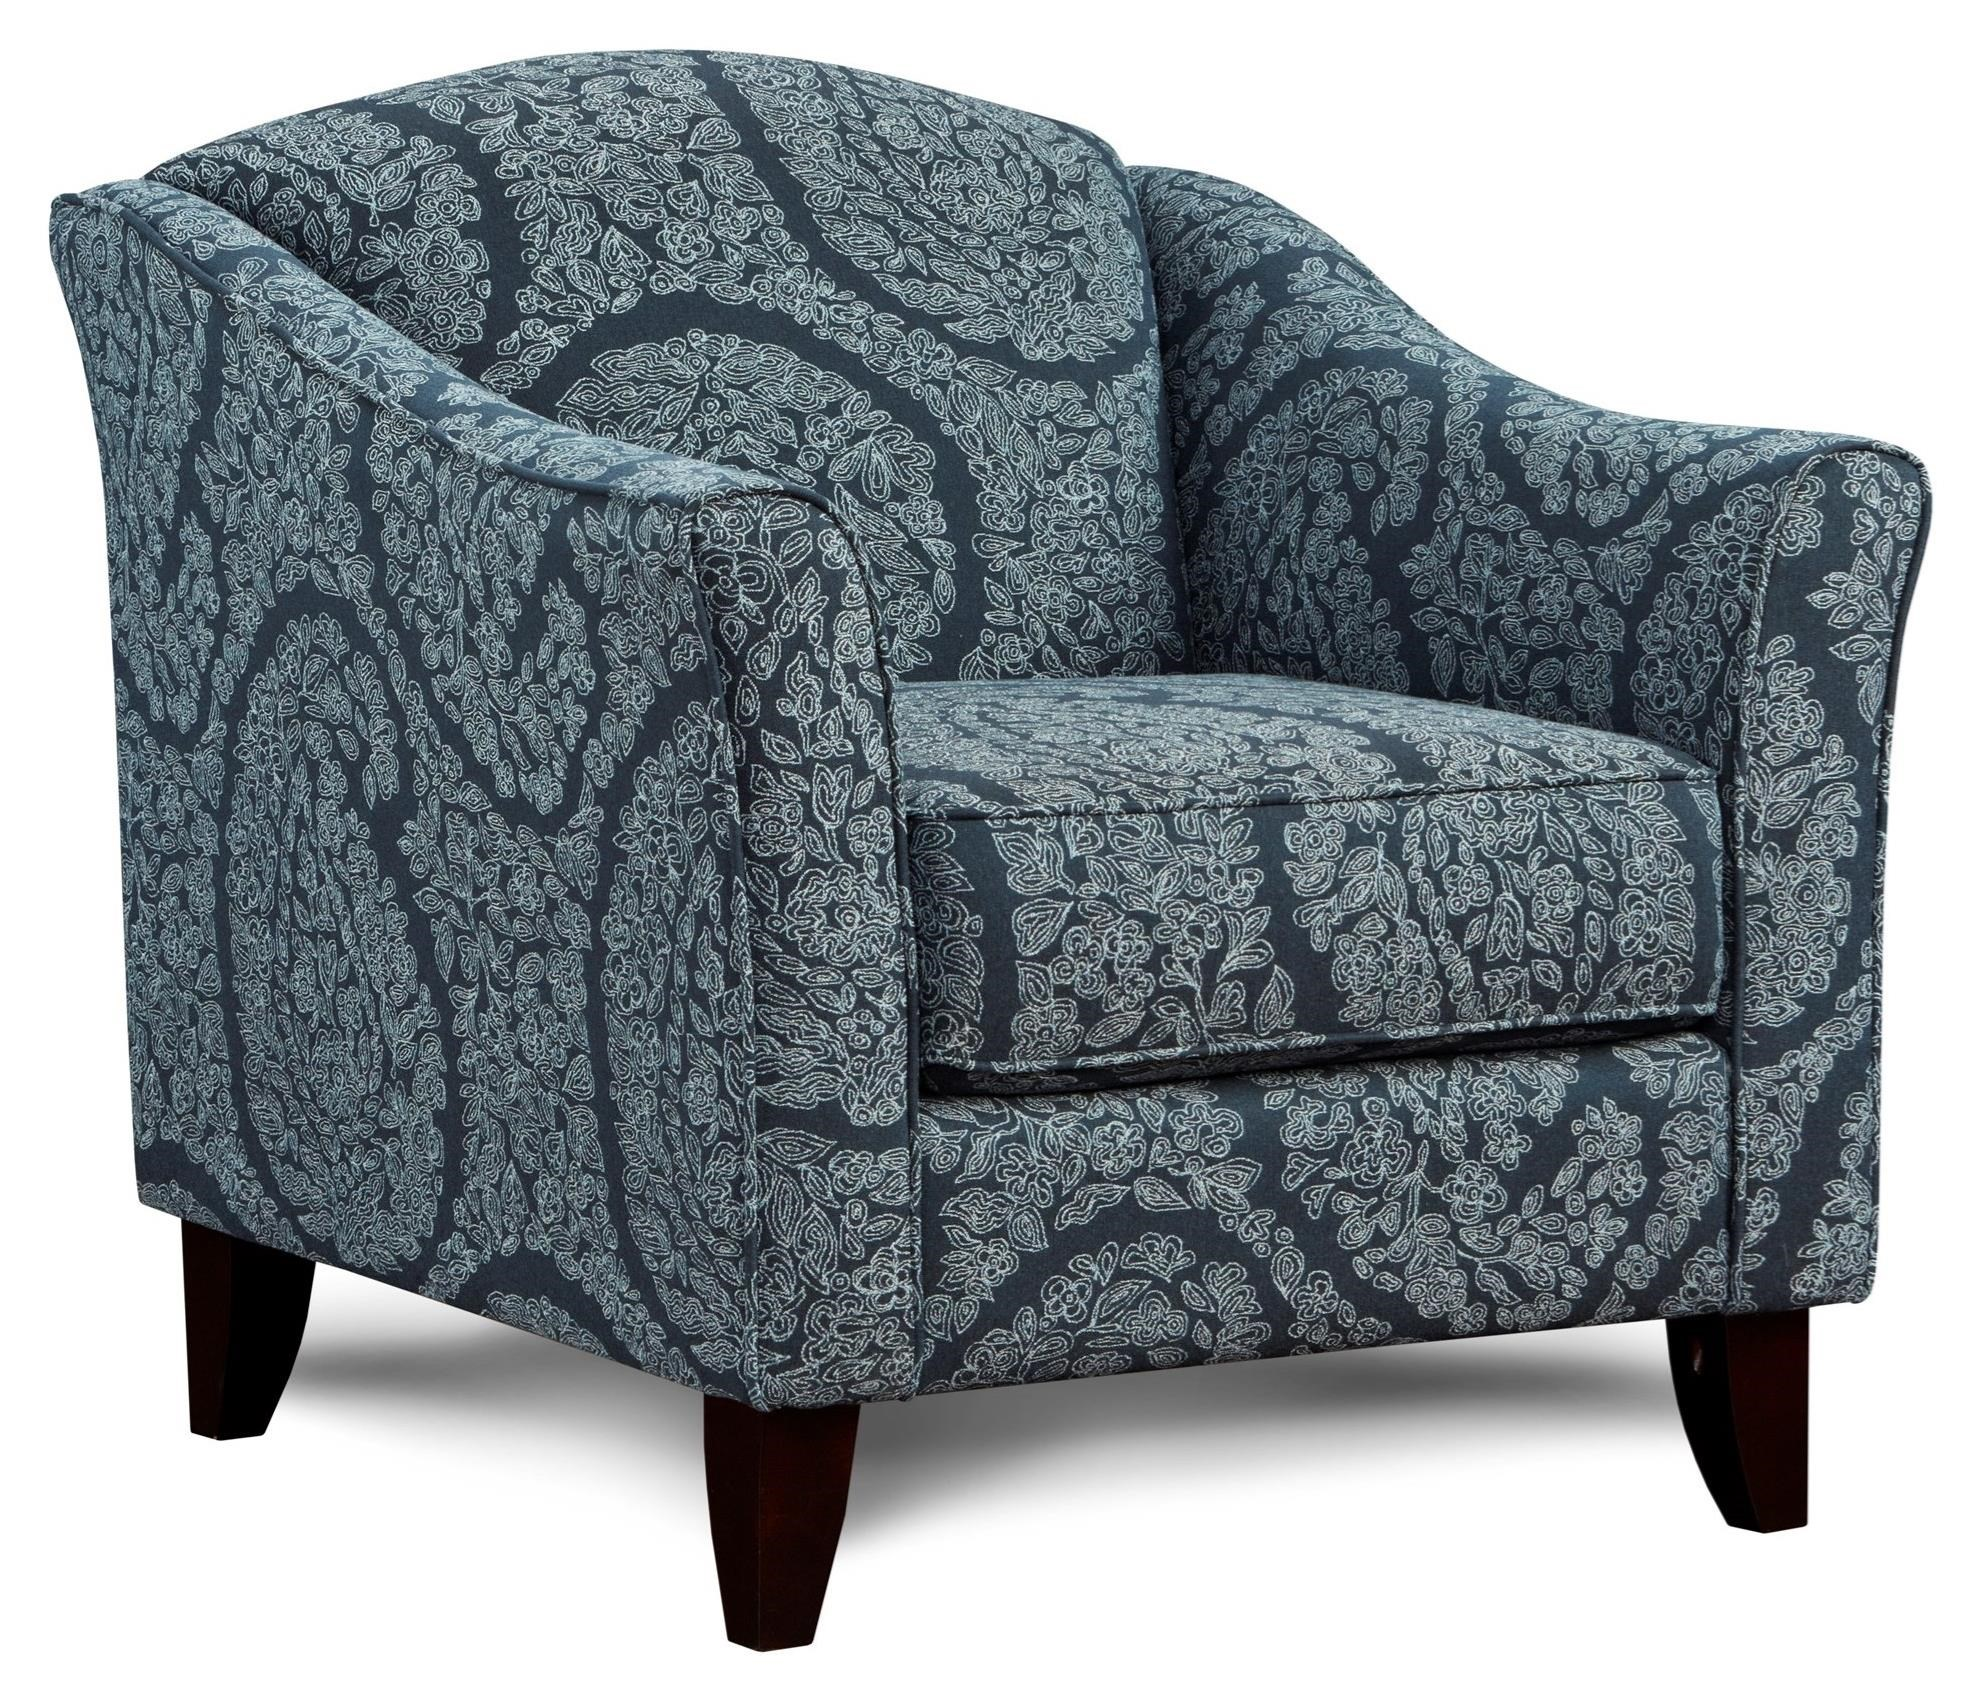 452 Chair by FN at Lindy's Furniture Company